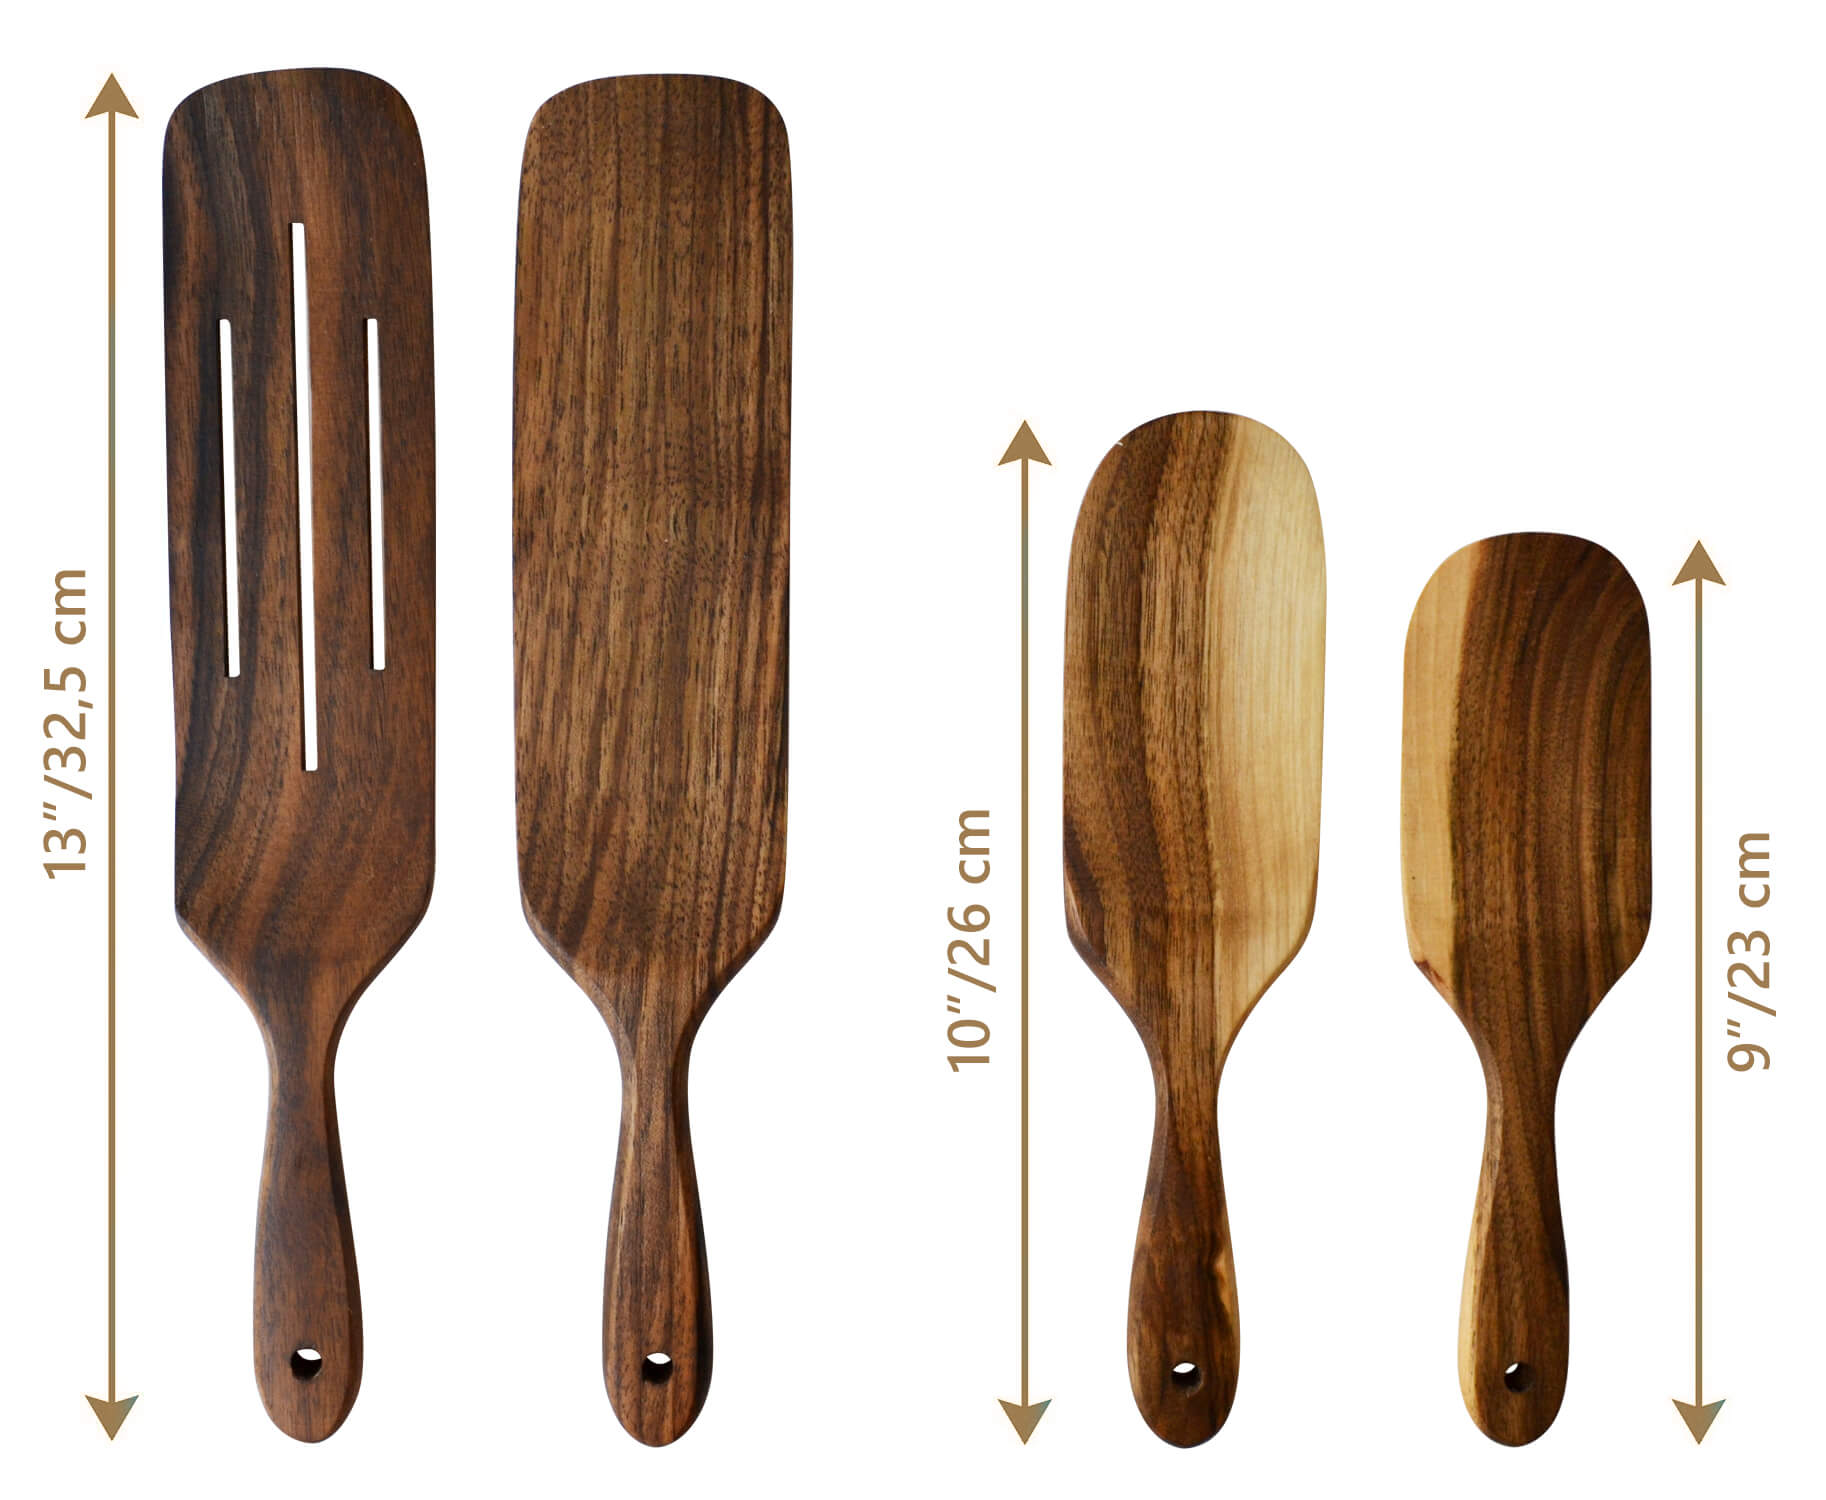 Buy Wooden Spoons For Cooking Kitchen Utensils Spatula